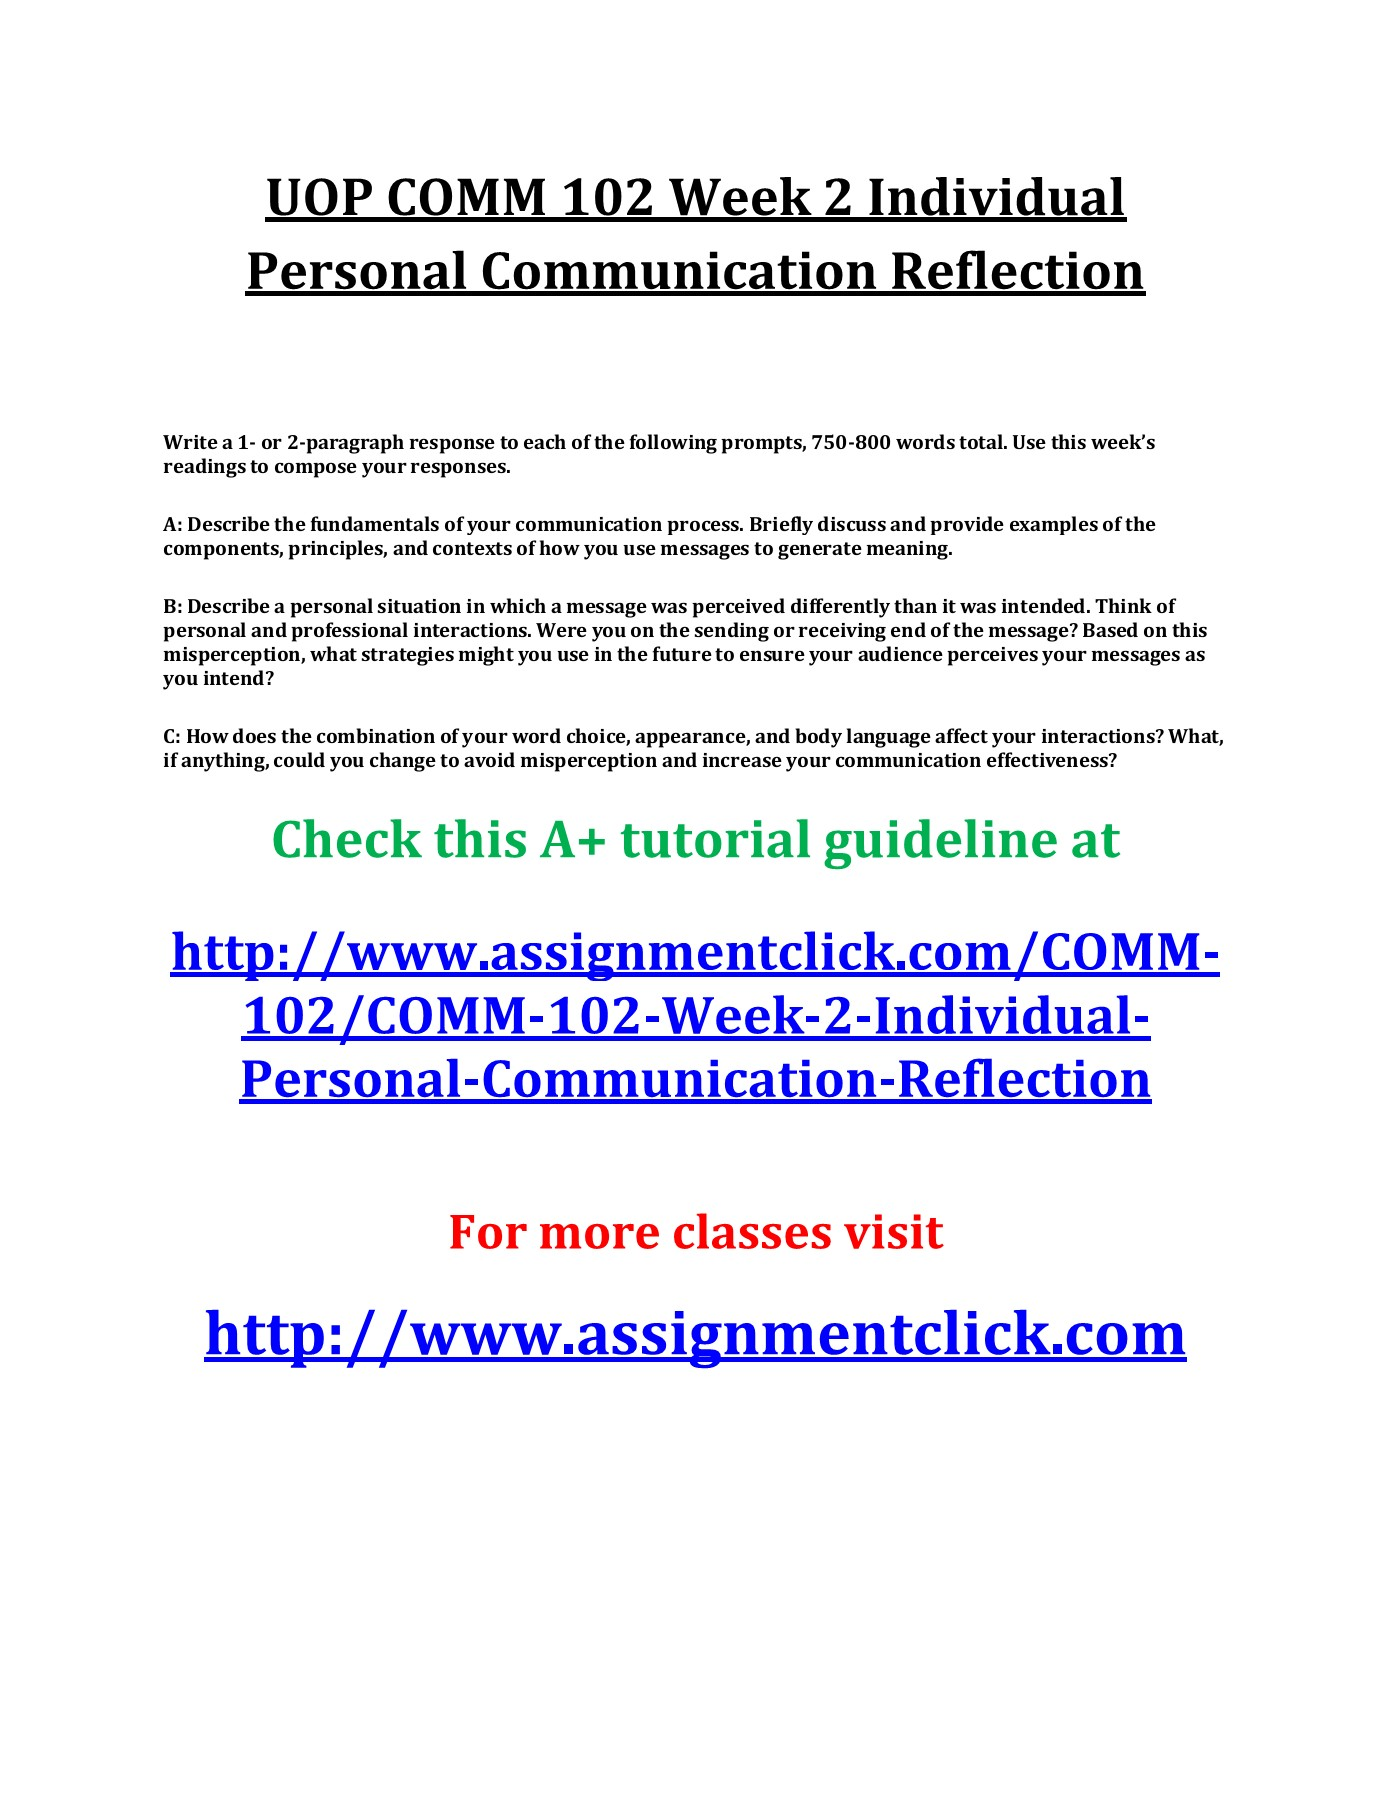 discuss personal communication